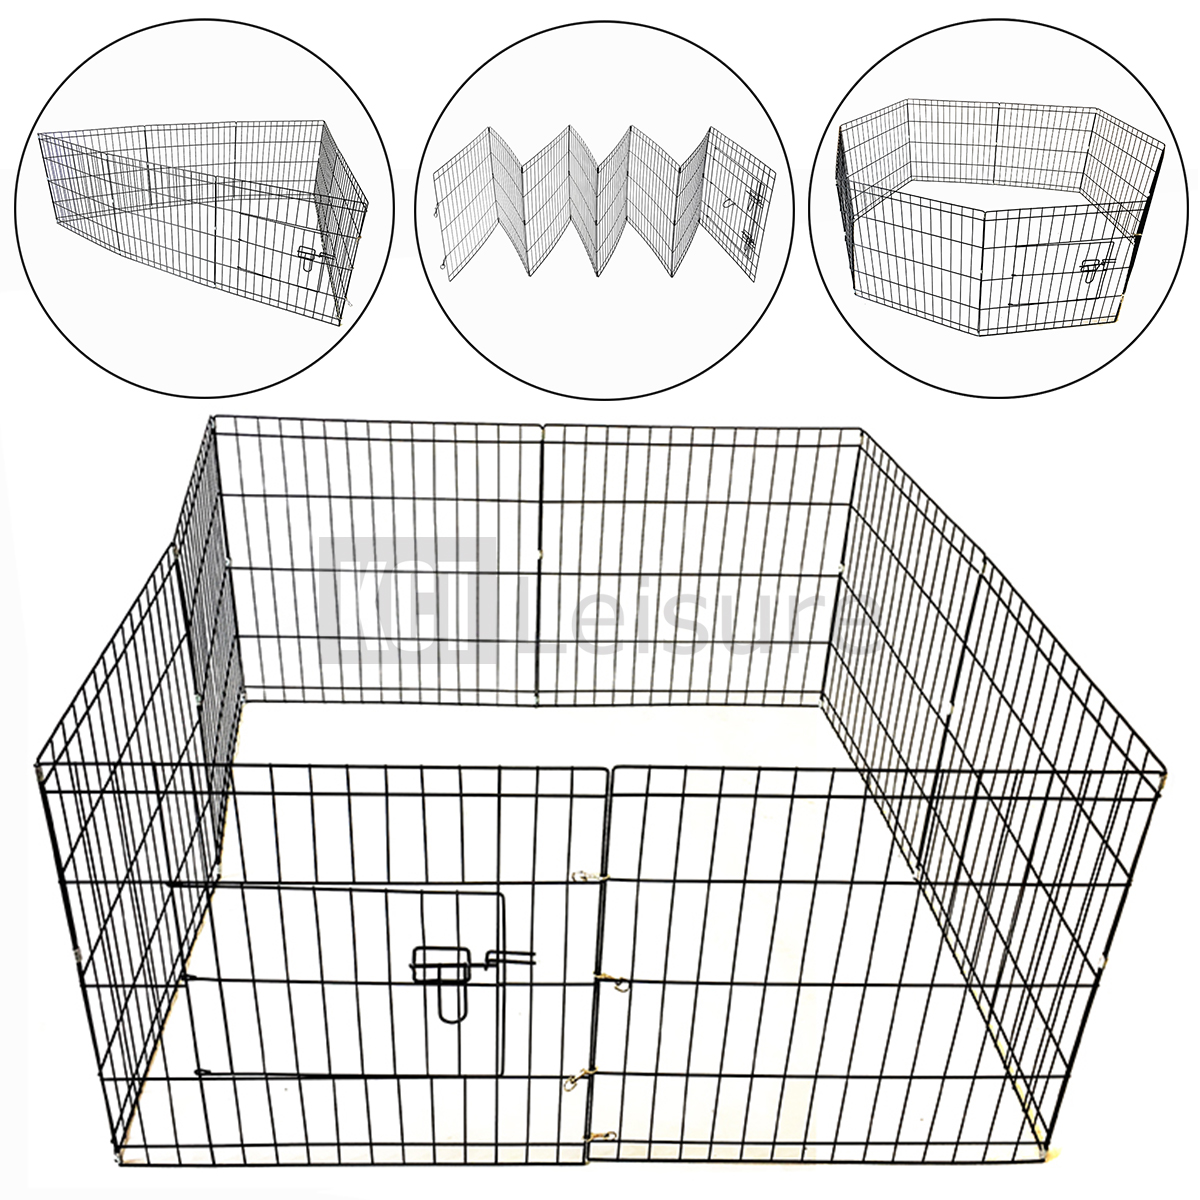 MEDIUM PET PUPPY WIRE PLAY PEN CAGE ANIMAL RABBIT RUN 8 SIDED METAL ...